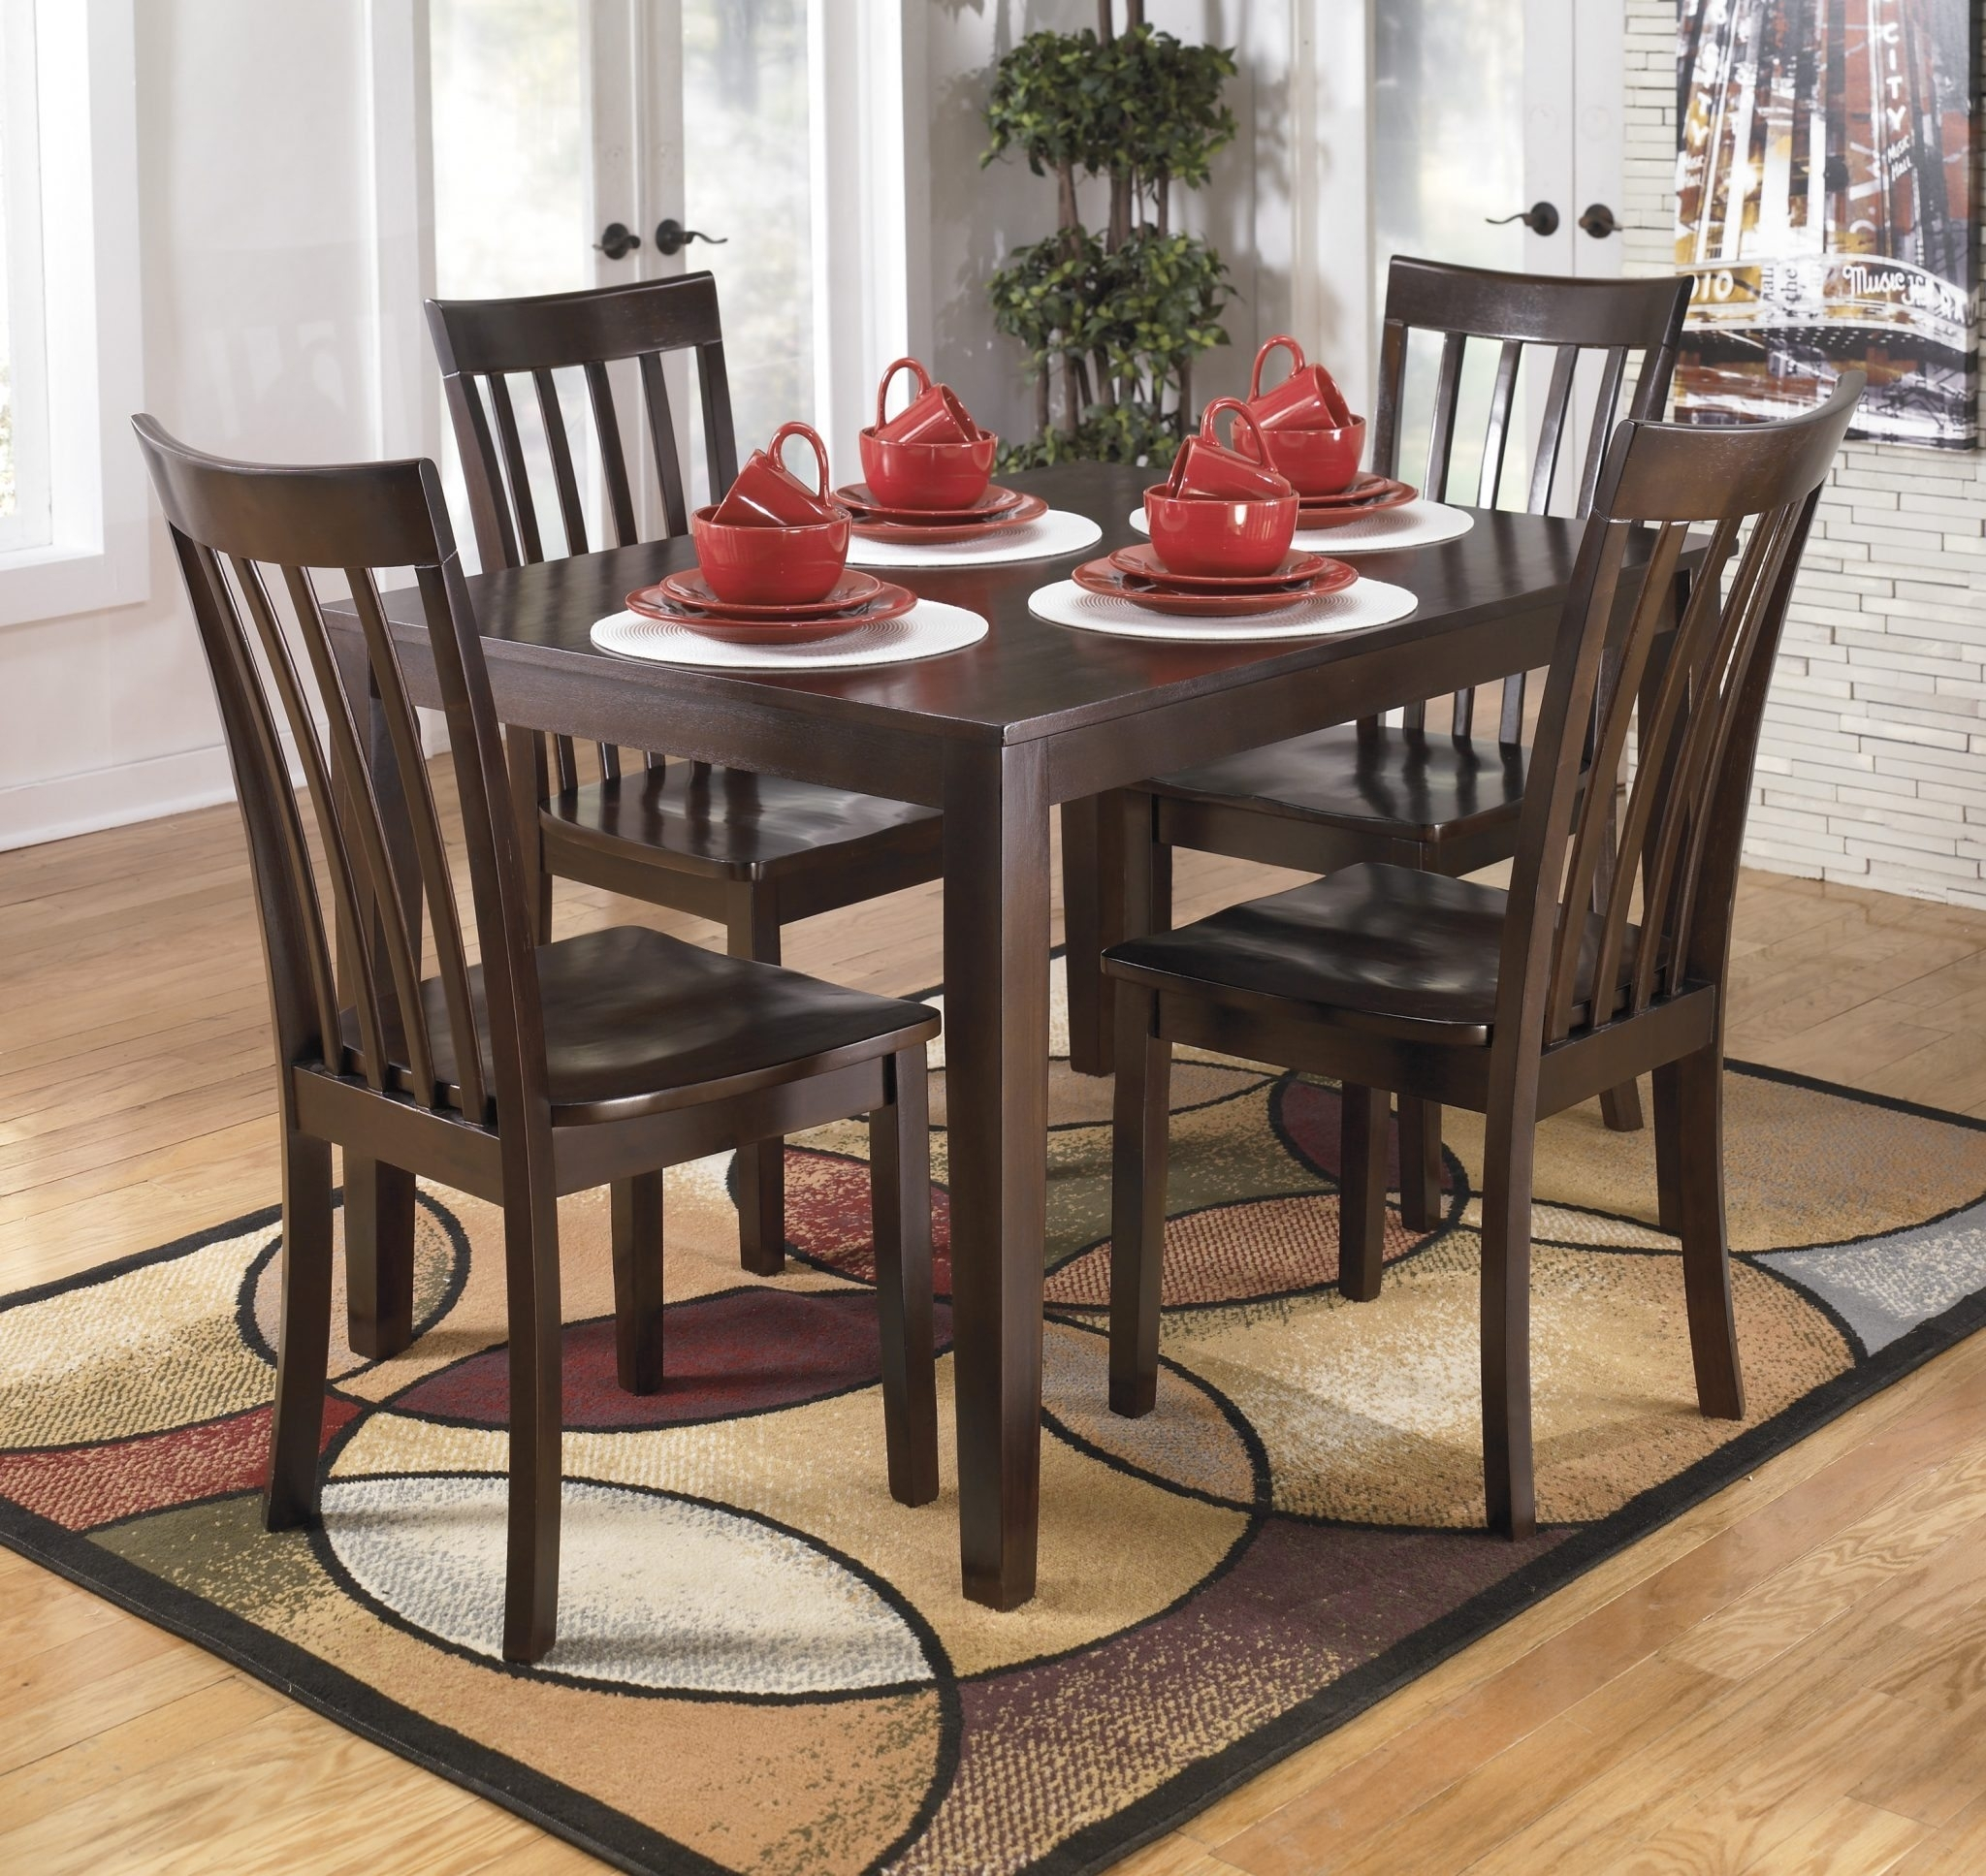 Ashley D258 225 Hyland Table And 4 Chairs | Best Furniture Mentor Oh Inside Most Recent Hyland 5 Piece Counter Sets With Stools (Image 2 of 20)